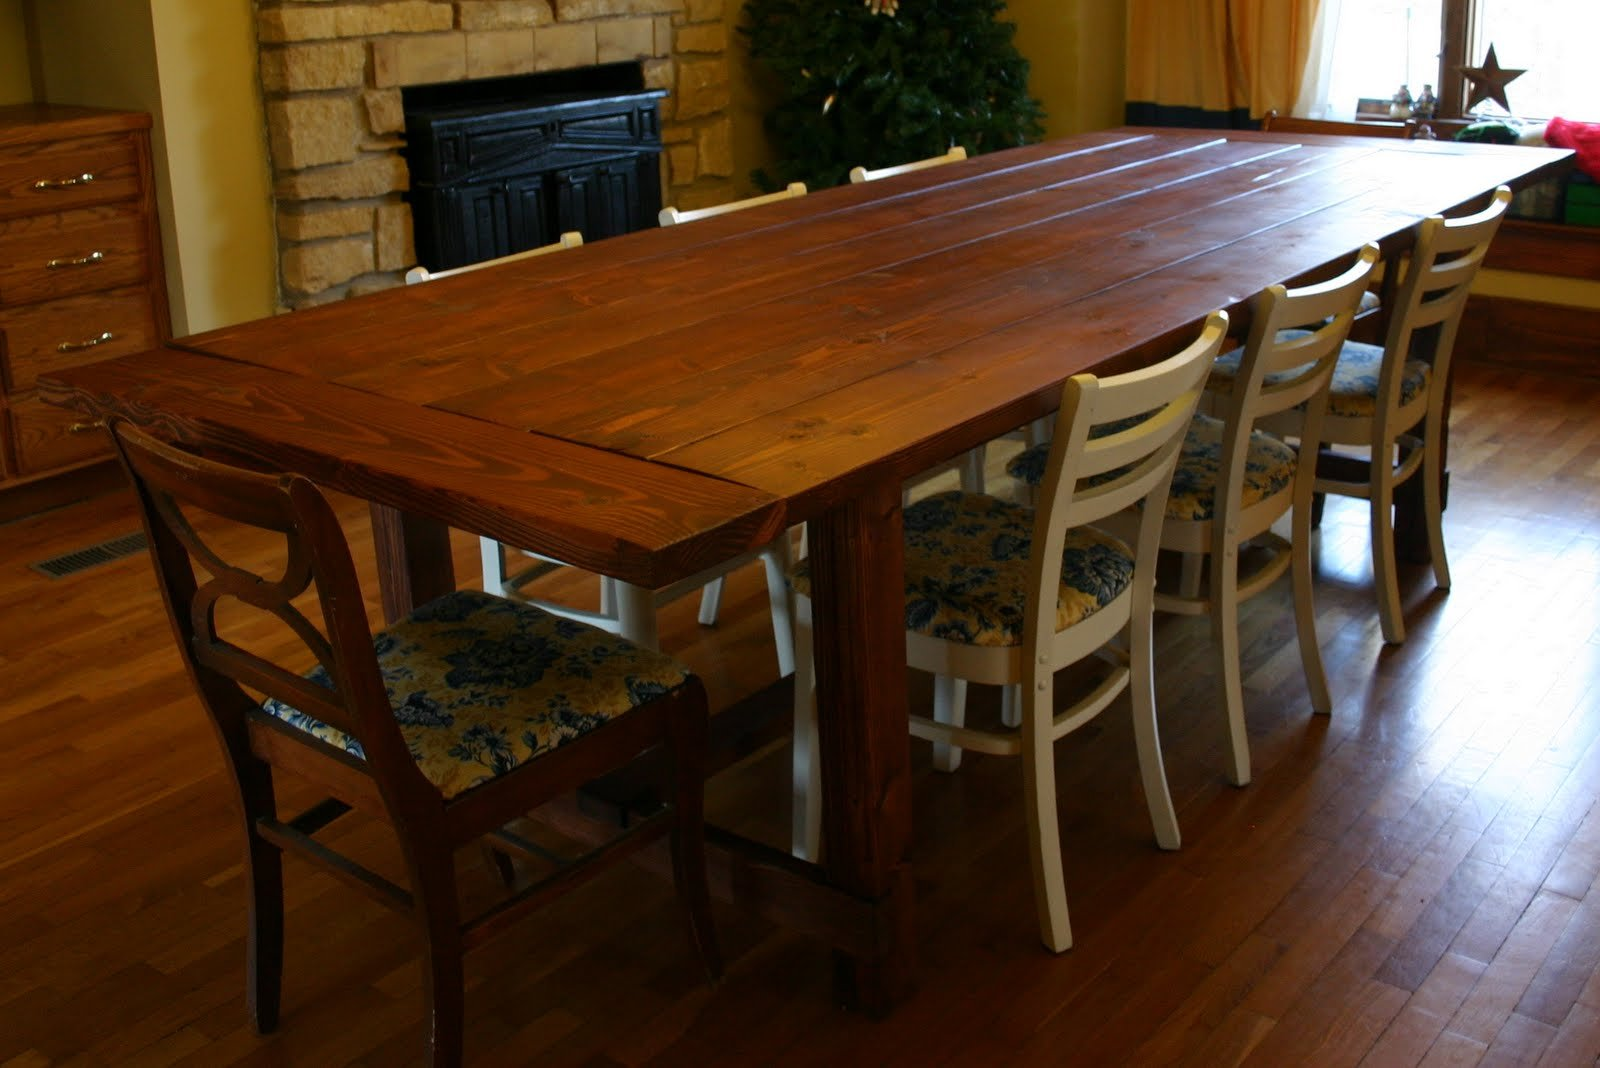 Rustic Farmhouse Dining Room Table Sets: German Jello Salad: Rustic Dining Table I Built From Free